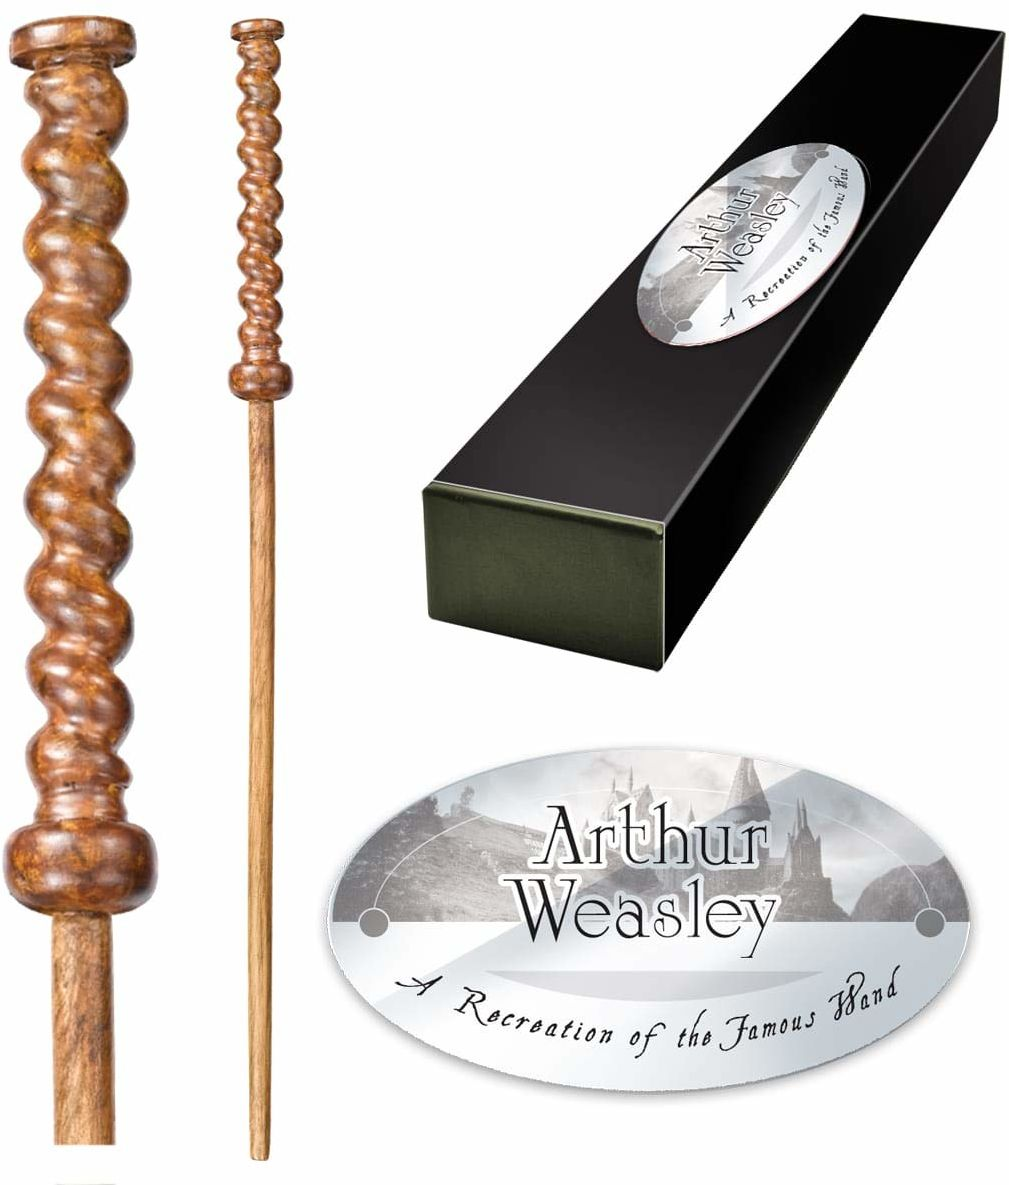 The Noble Collection - Arthur Weasley Character Wand - 16in (40cm) High Quality Wizarding World Wand With Name Tag - Harry Potter Film Set Movie Props Wands